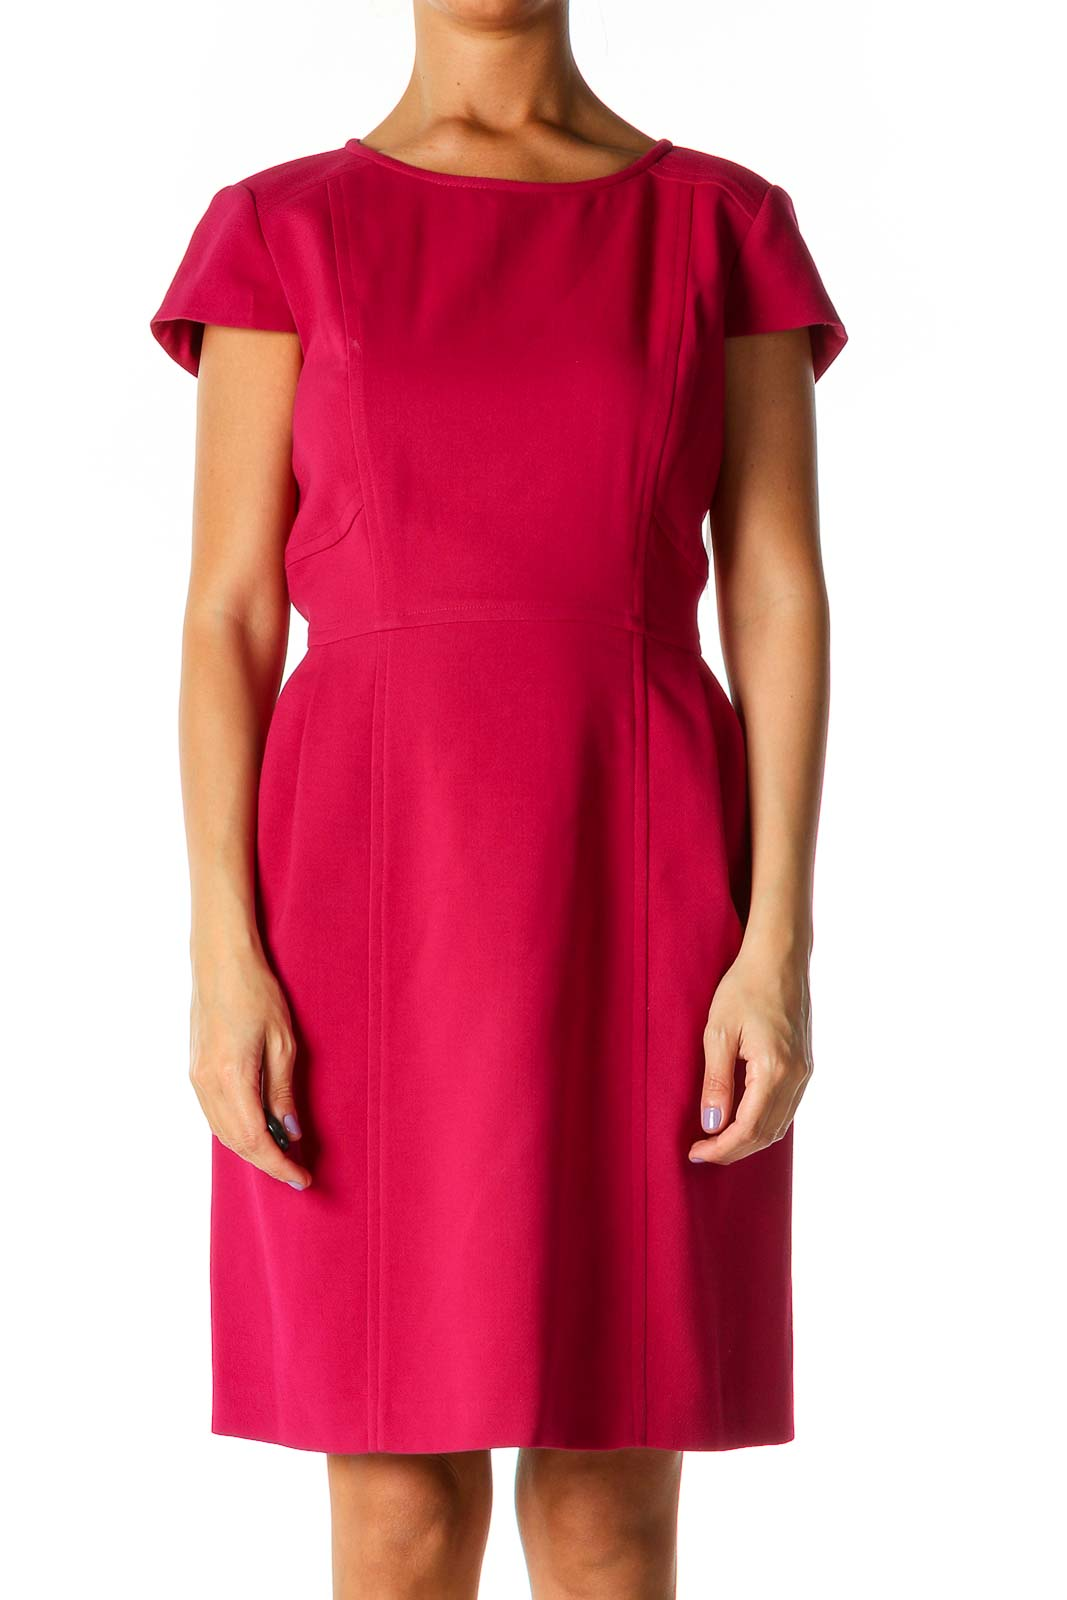 Pink Solid Work A-Line Dress Front